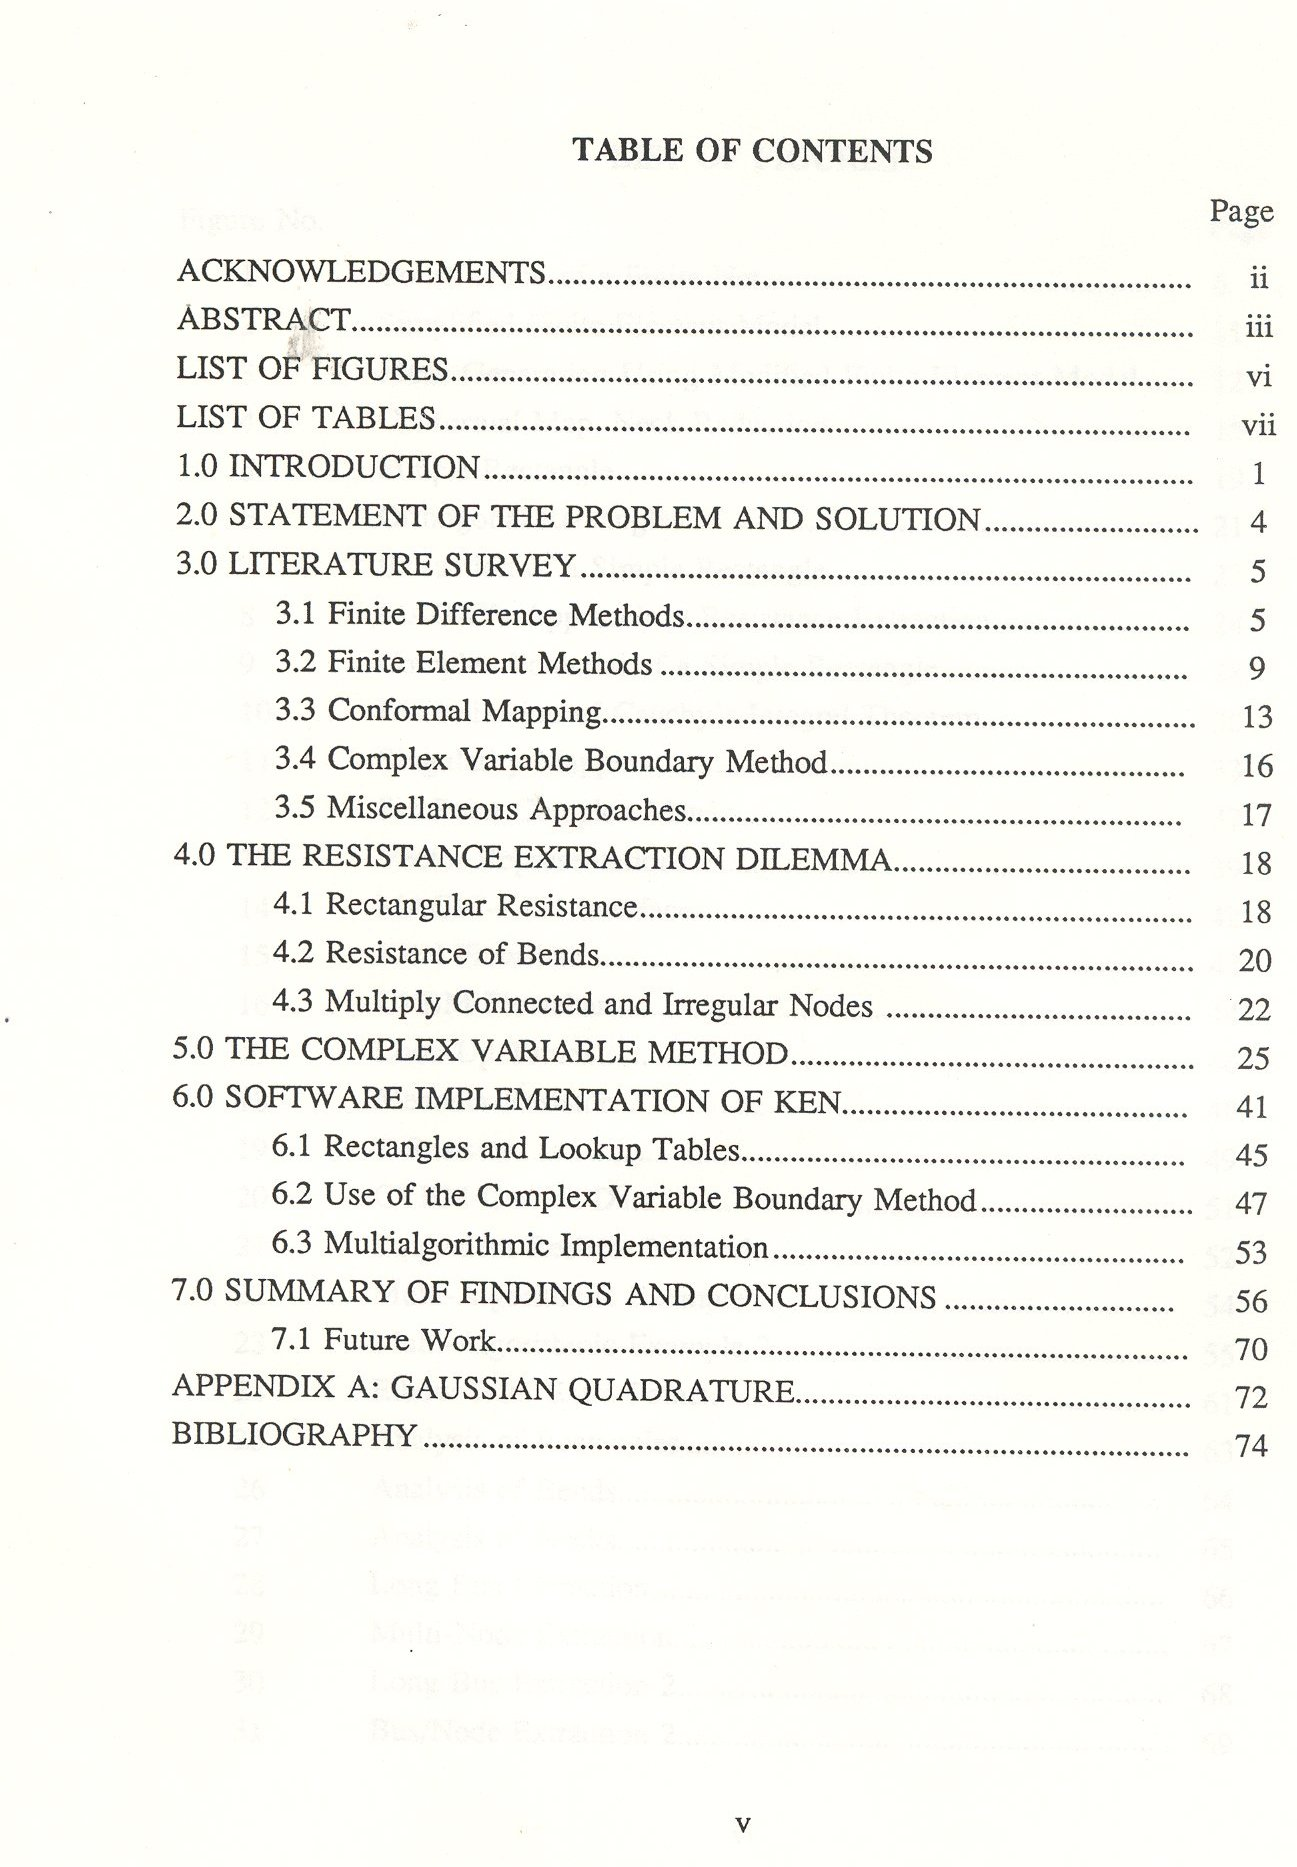 Essay table of contents